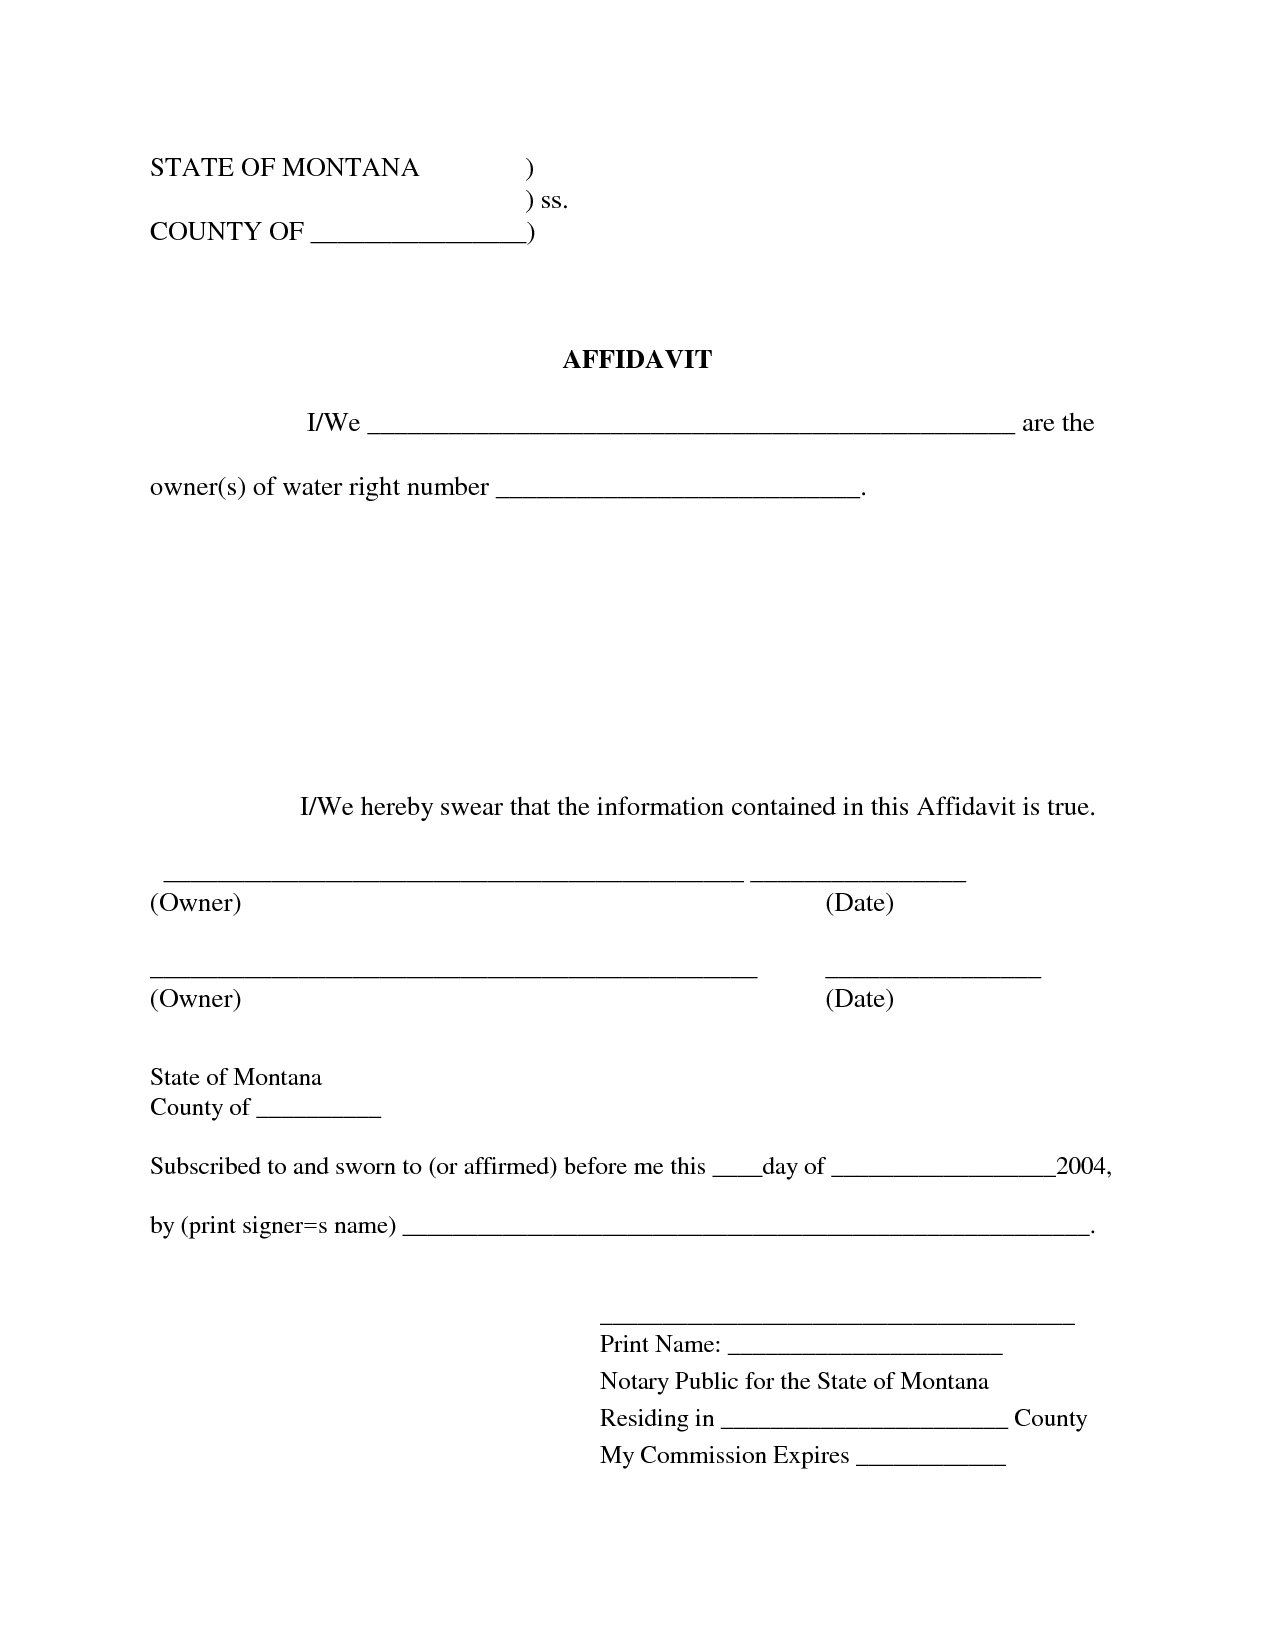 Free Blank Affidavit Form | Blank Sworn Affidavit Forms | kiss68one ...